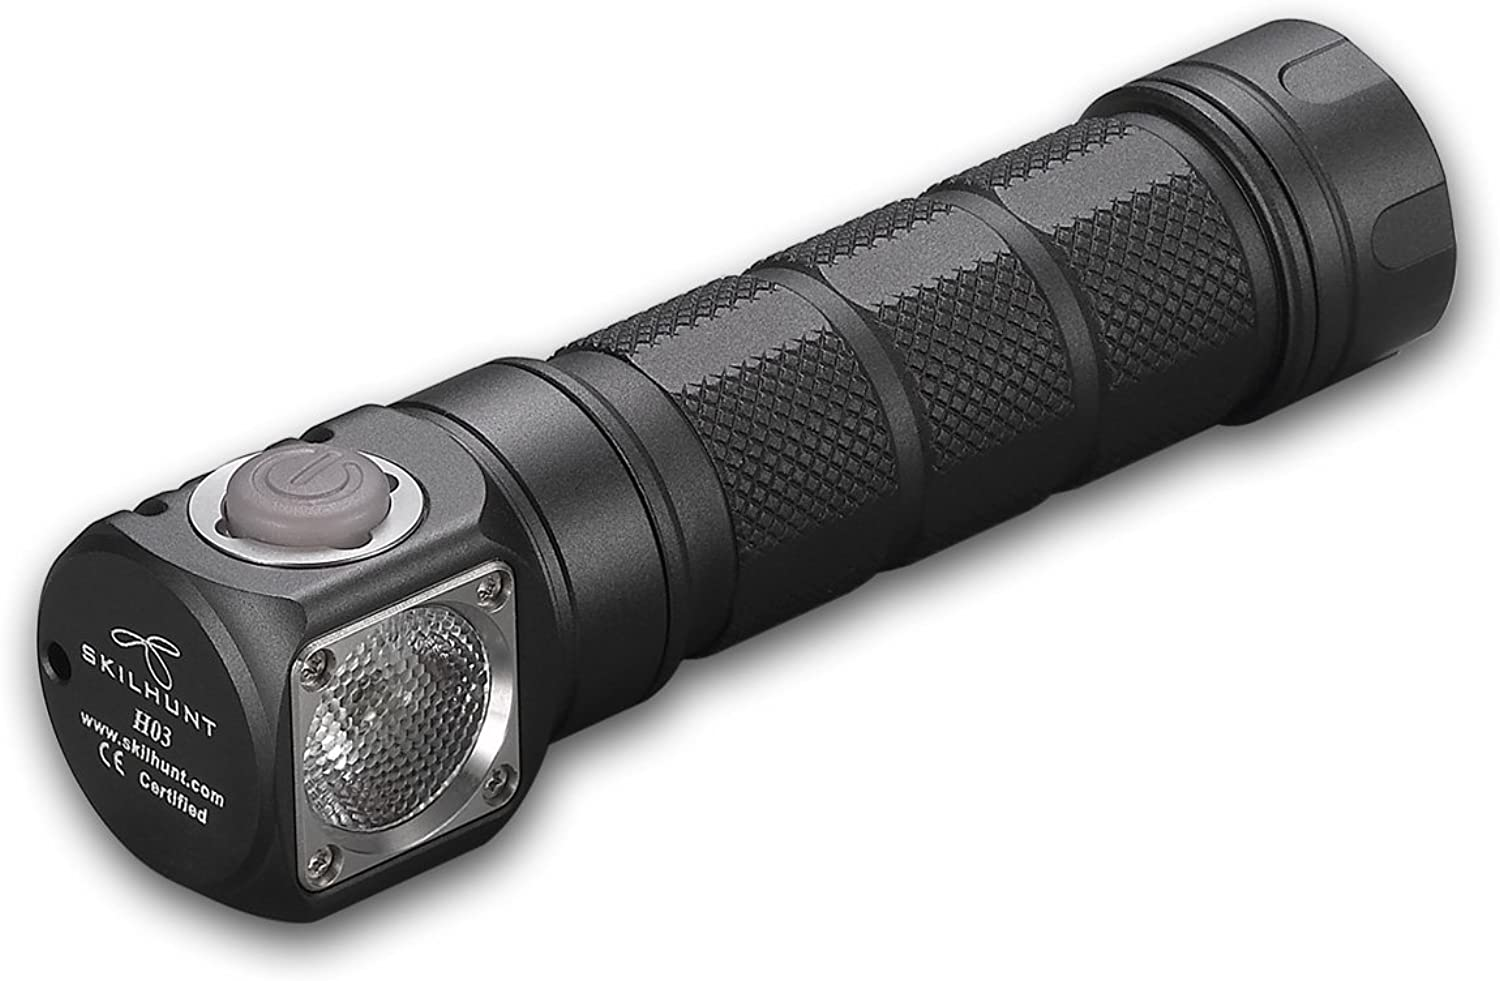 Camping Headlamp,Adjustable Head Flashlights, Emergency Mini High Power USB Rechargeable Waterproof Running Working Headlamp Tactical Flashlight,Best For Outdoors, Adults.(H03, Neutral White)